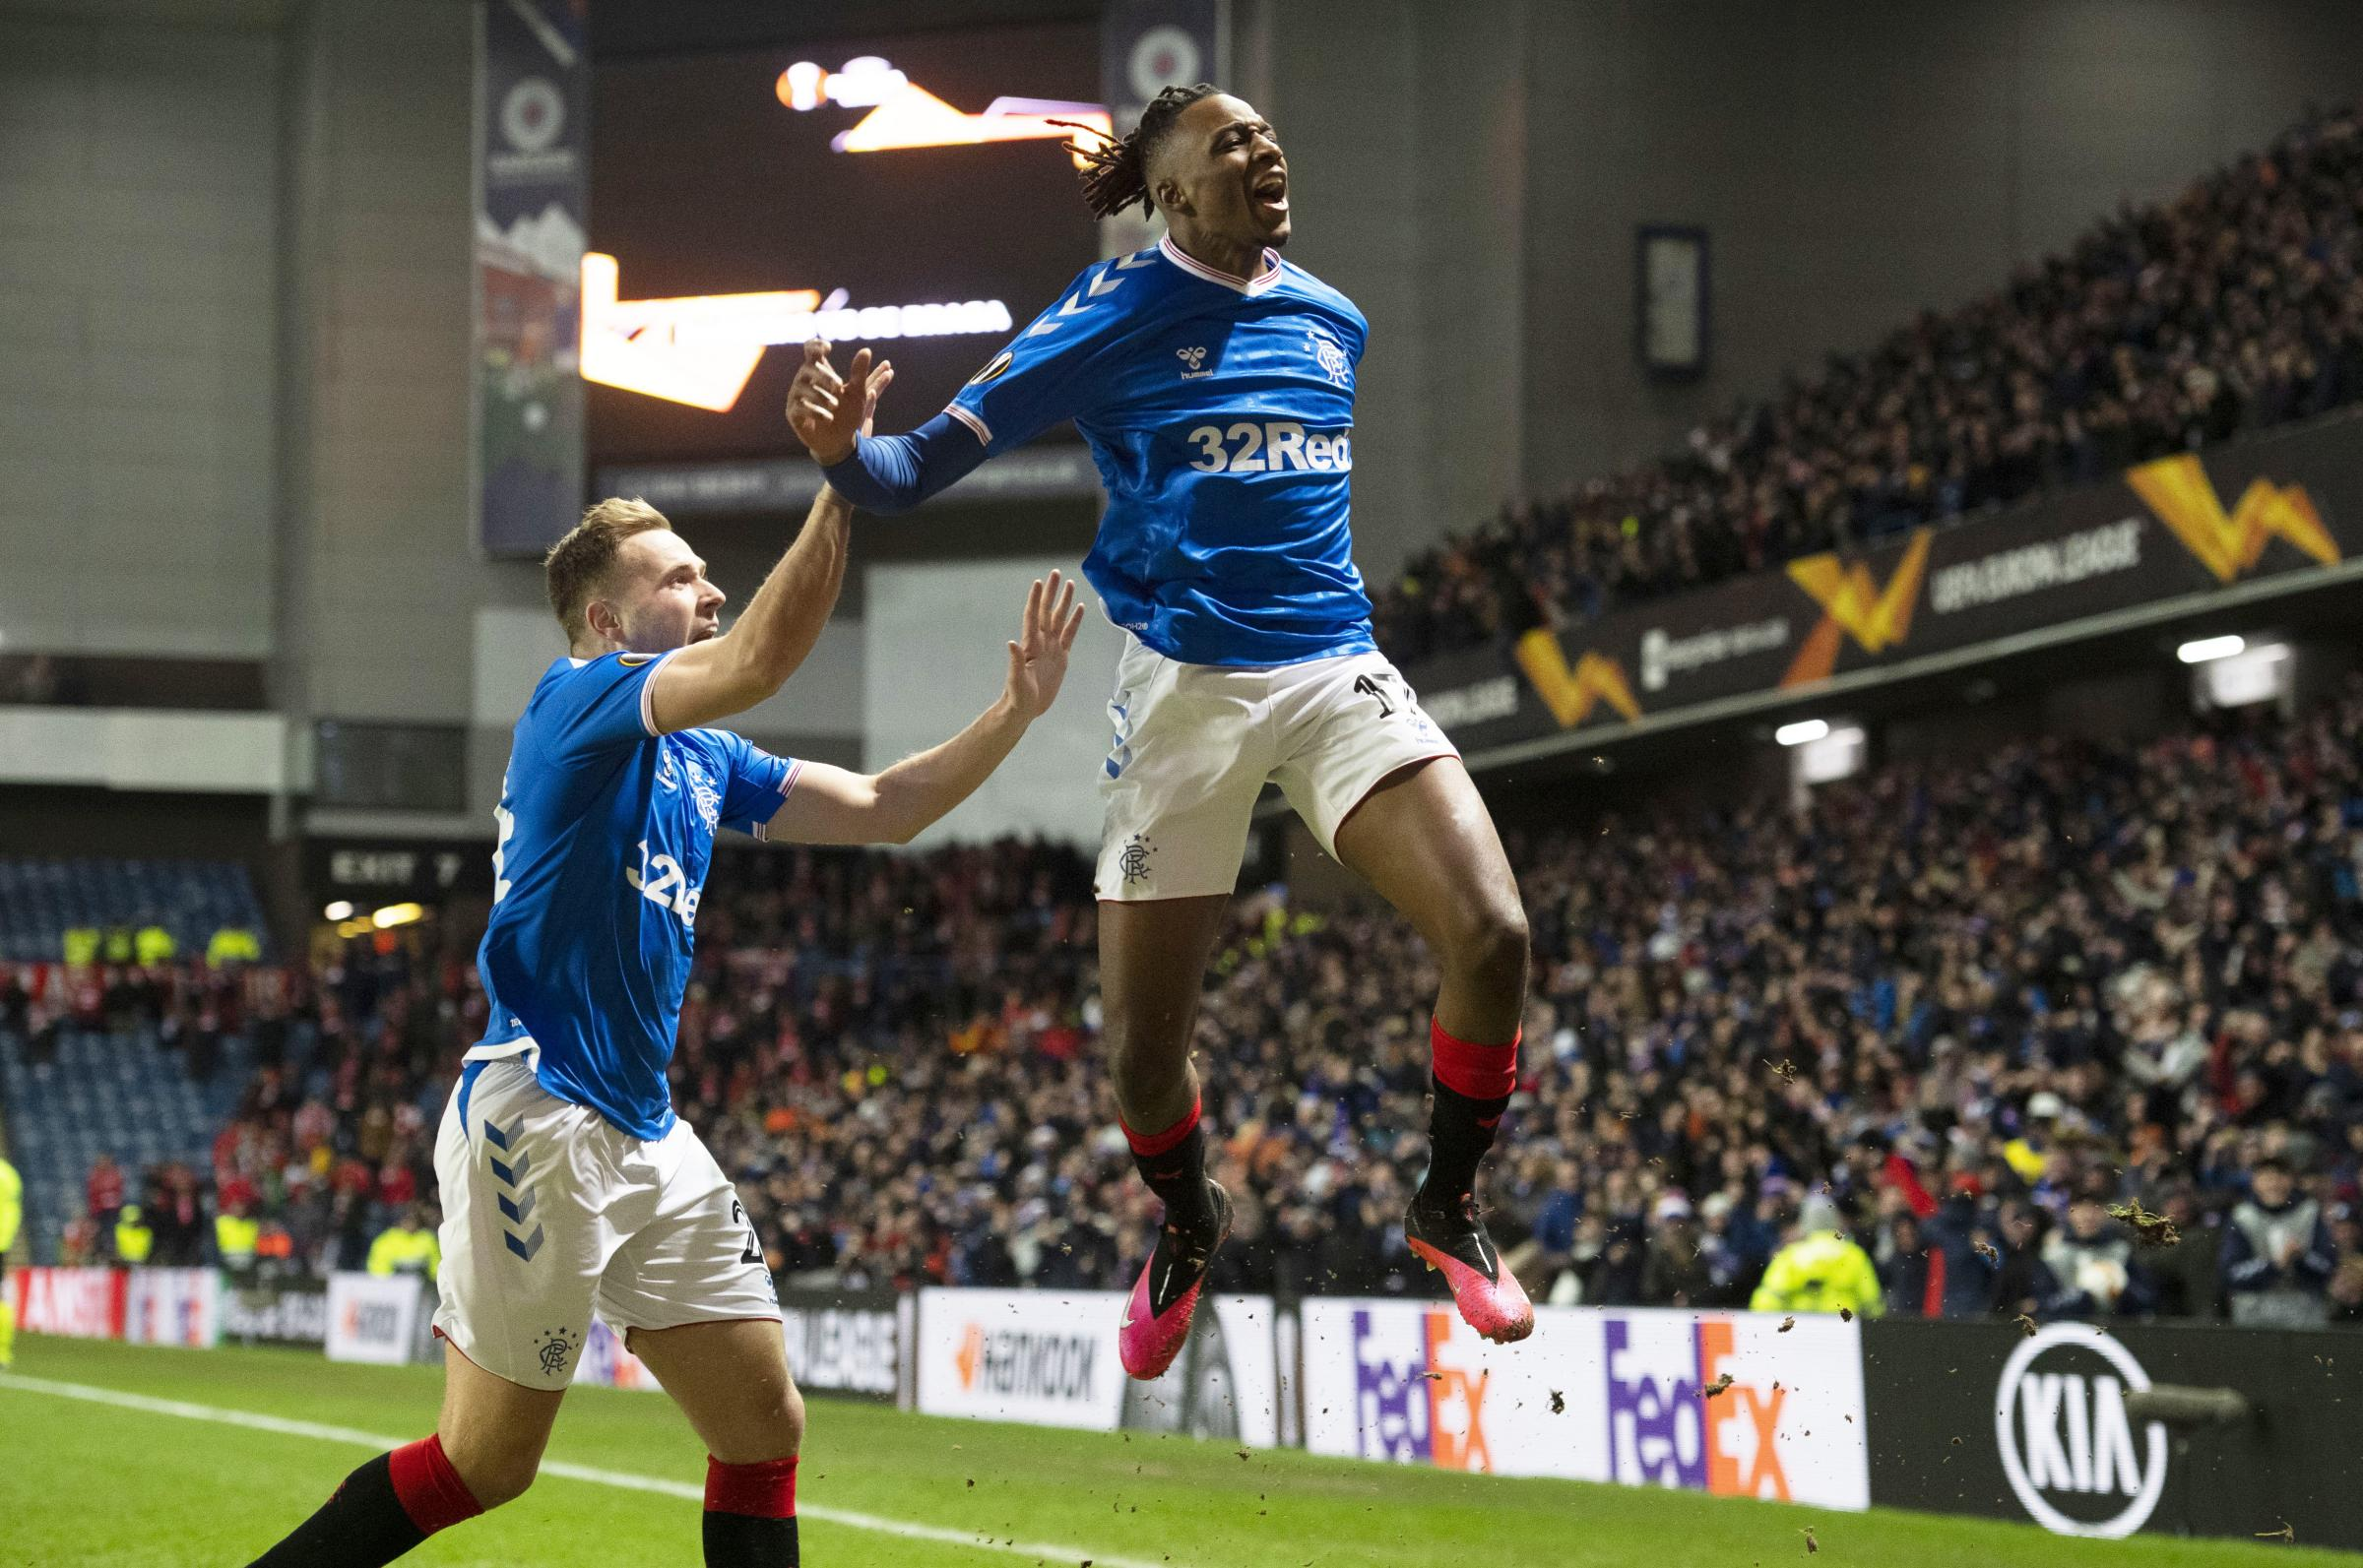 Joe Aribo determined to give Rangers fans plenty to cheer despite Ibrox crowd absence